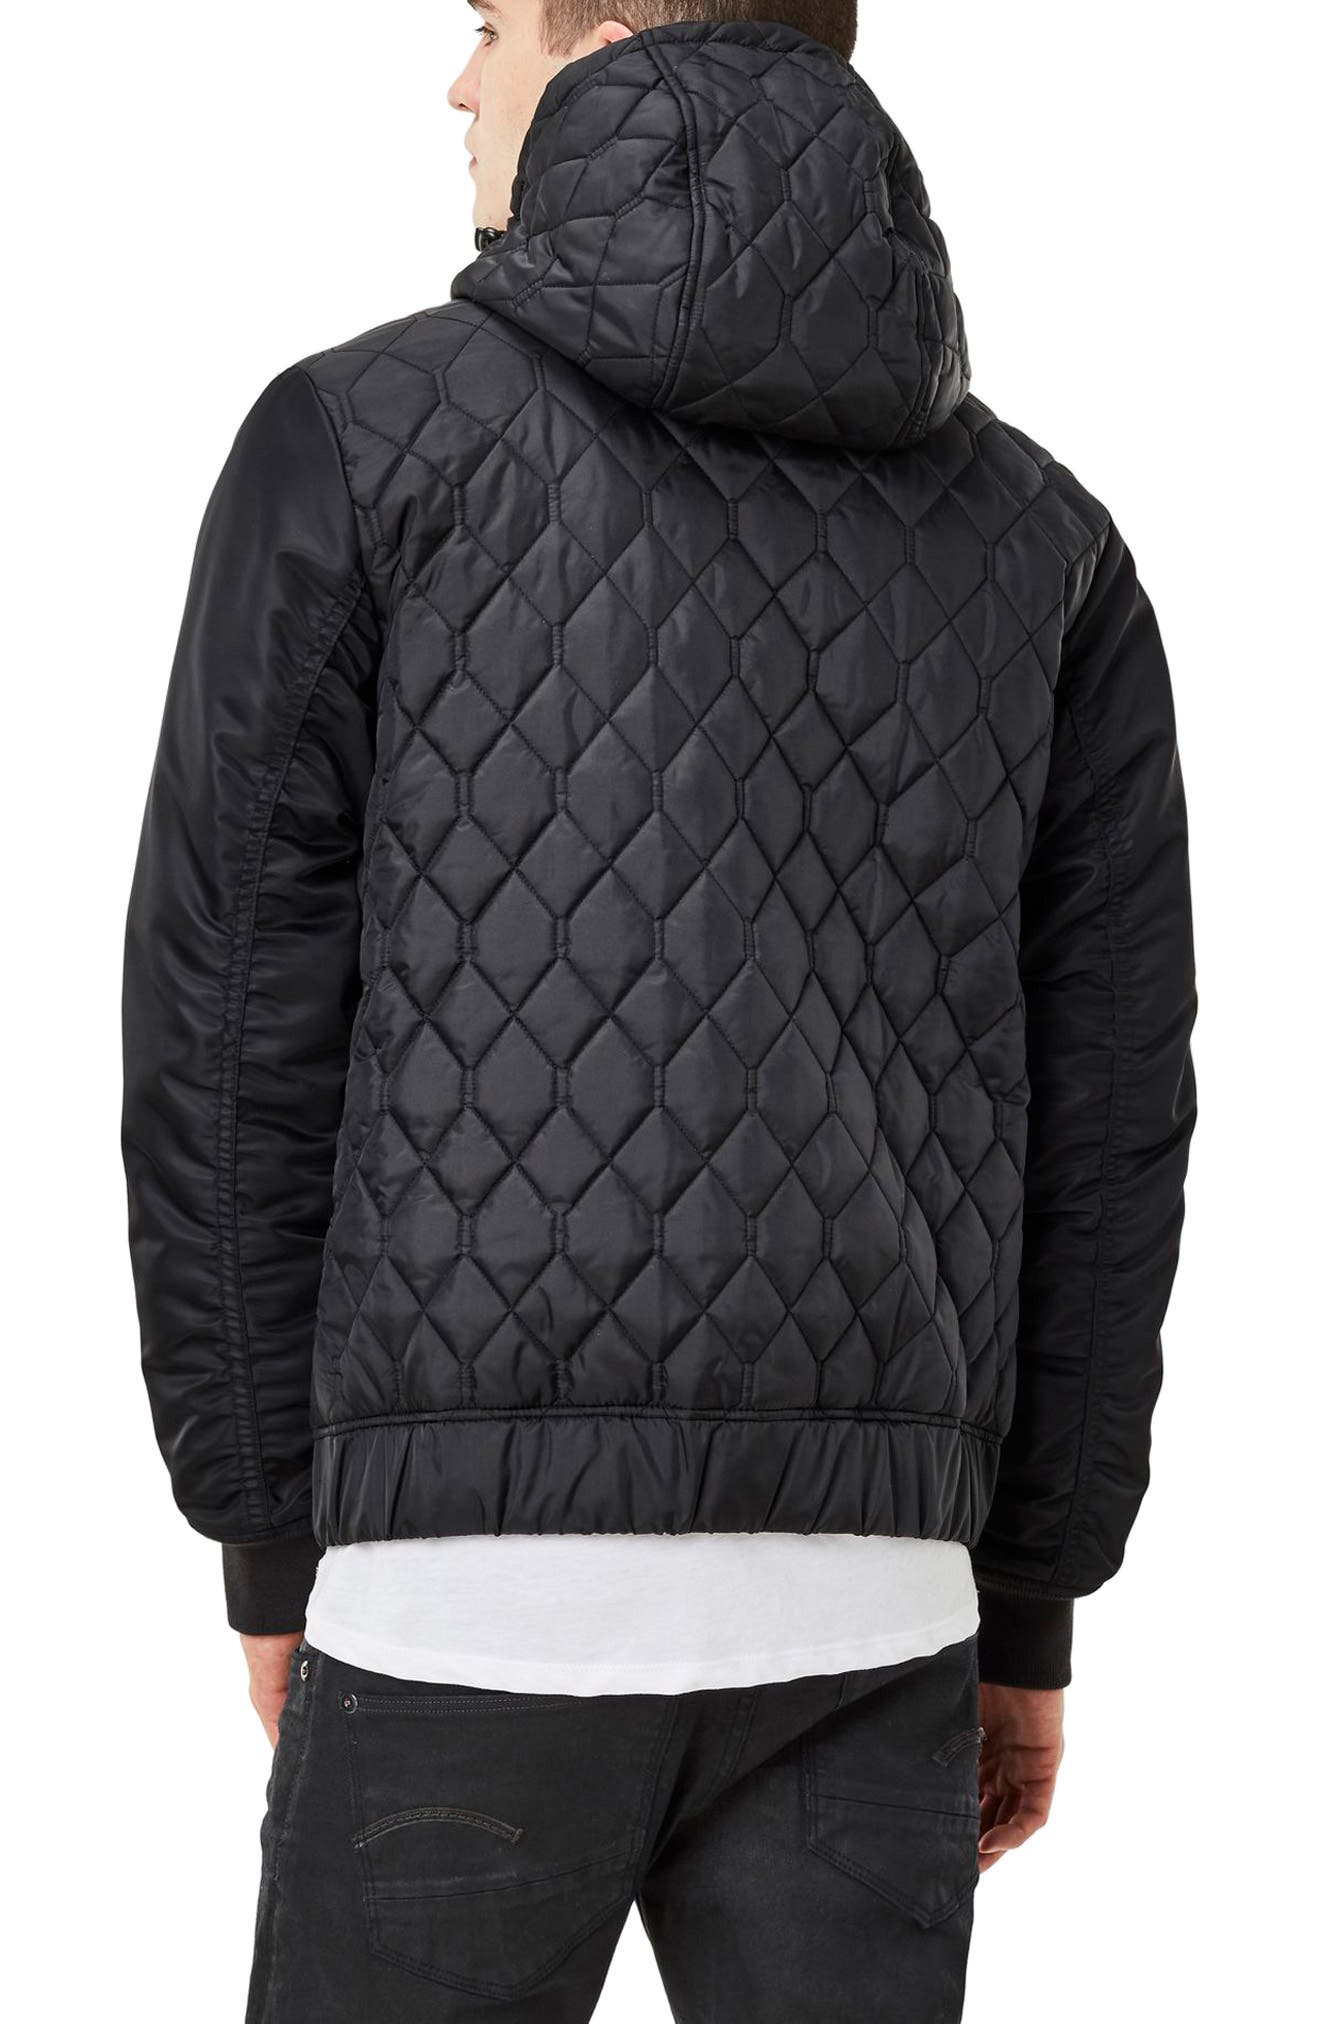 Meefic Hybrid Quilted Jacket,                             Alternate thumbnail 2, color,                             001